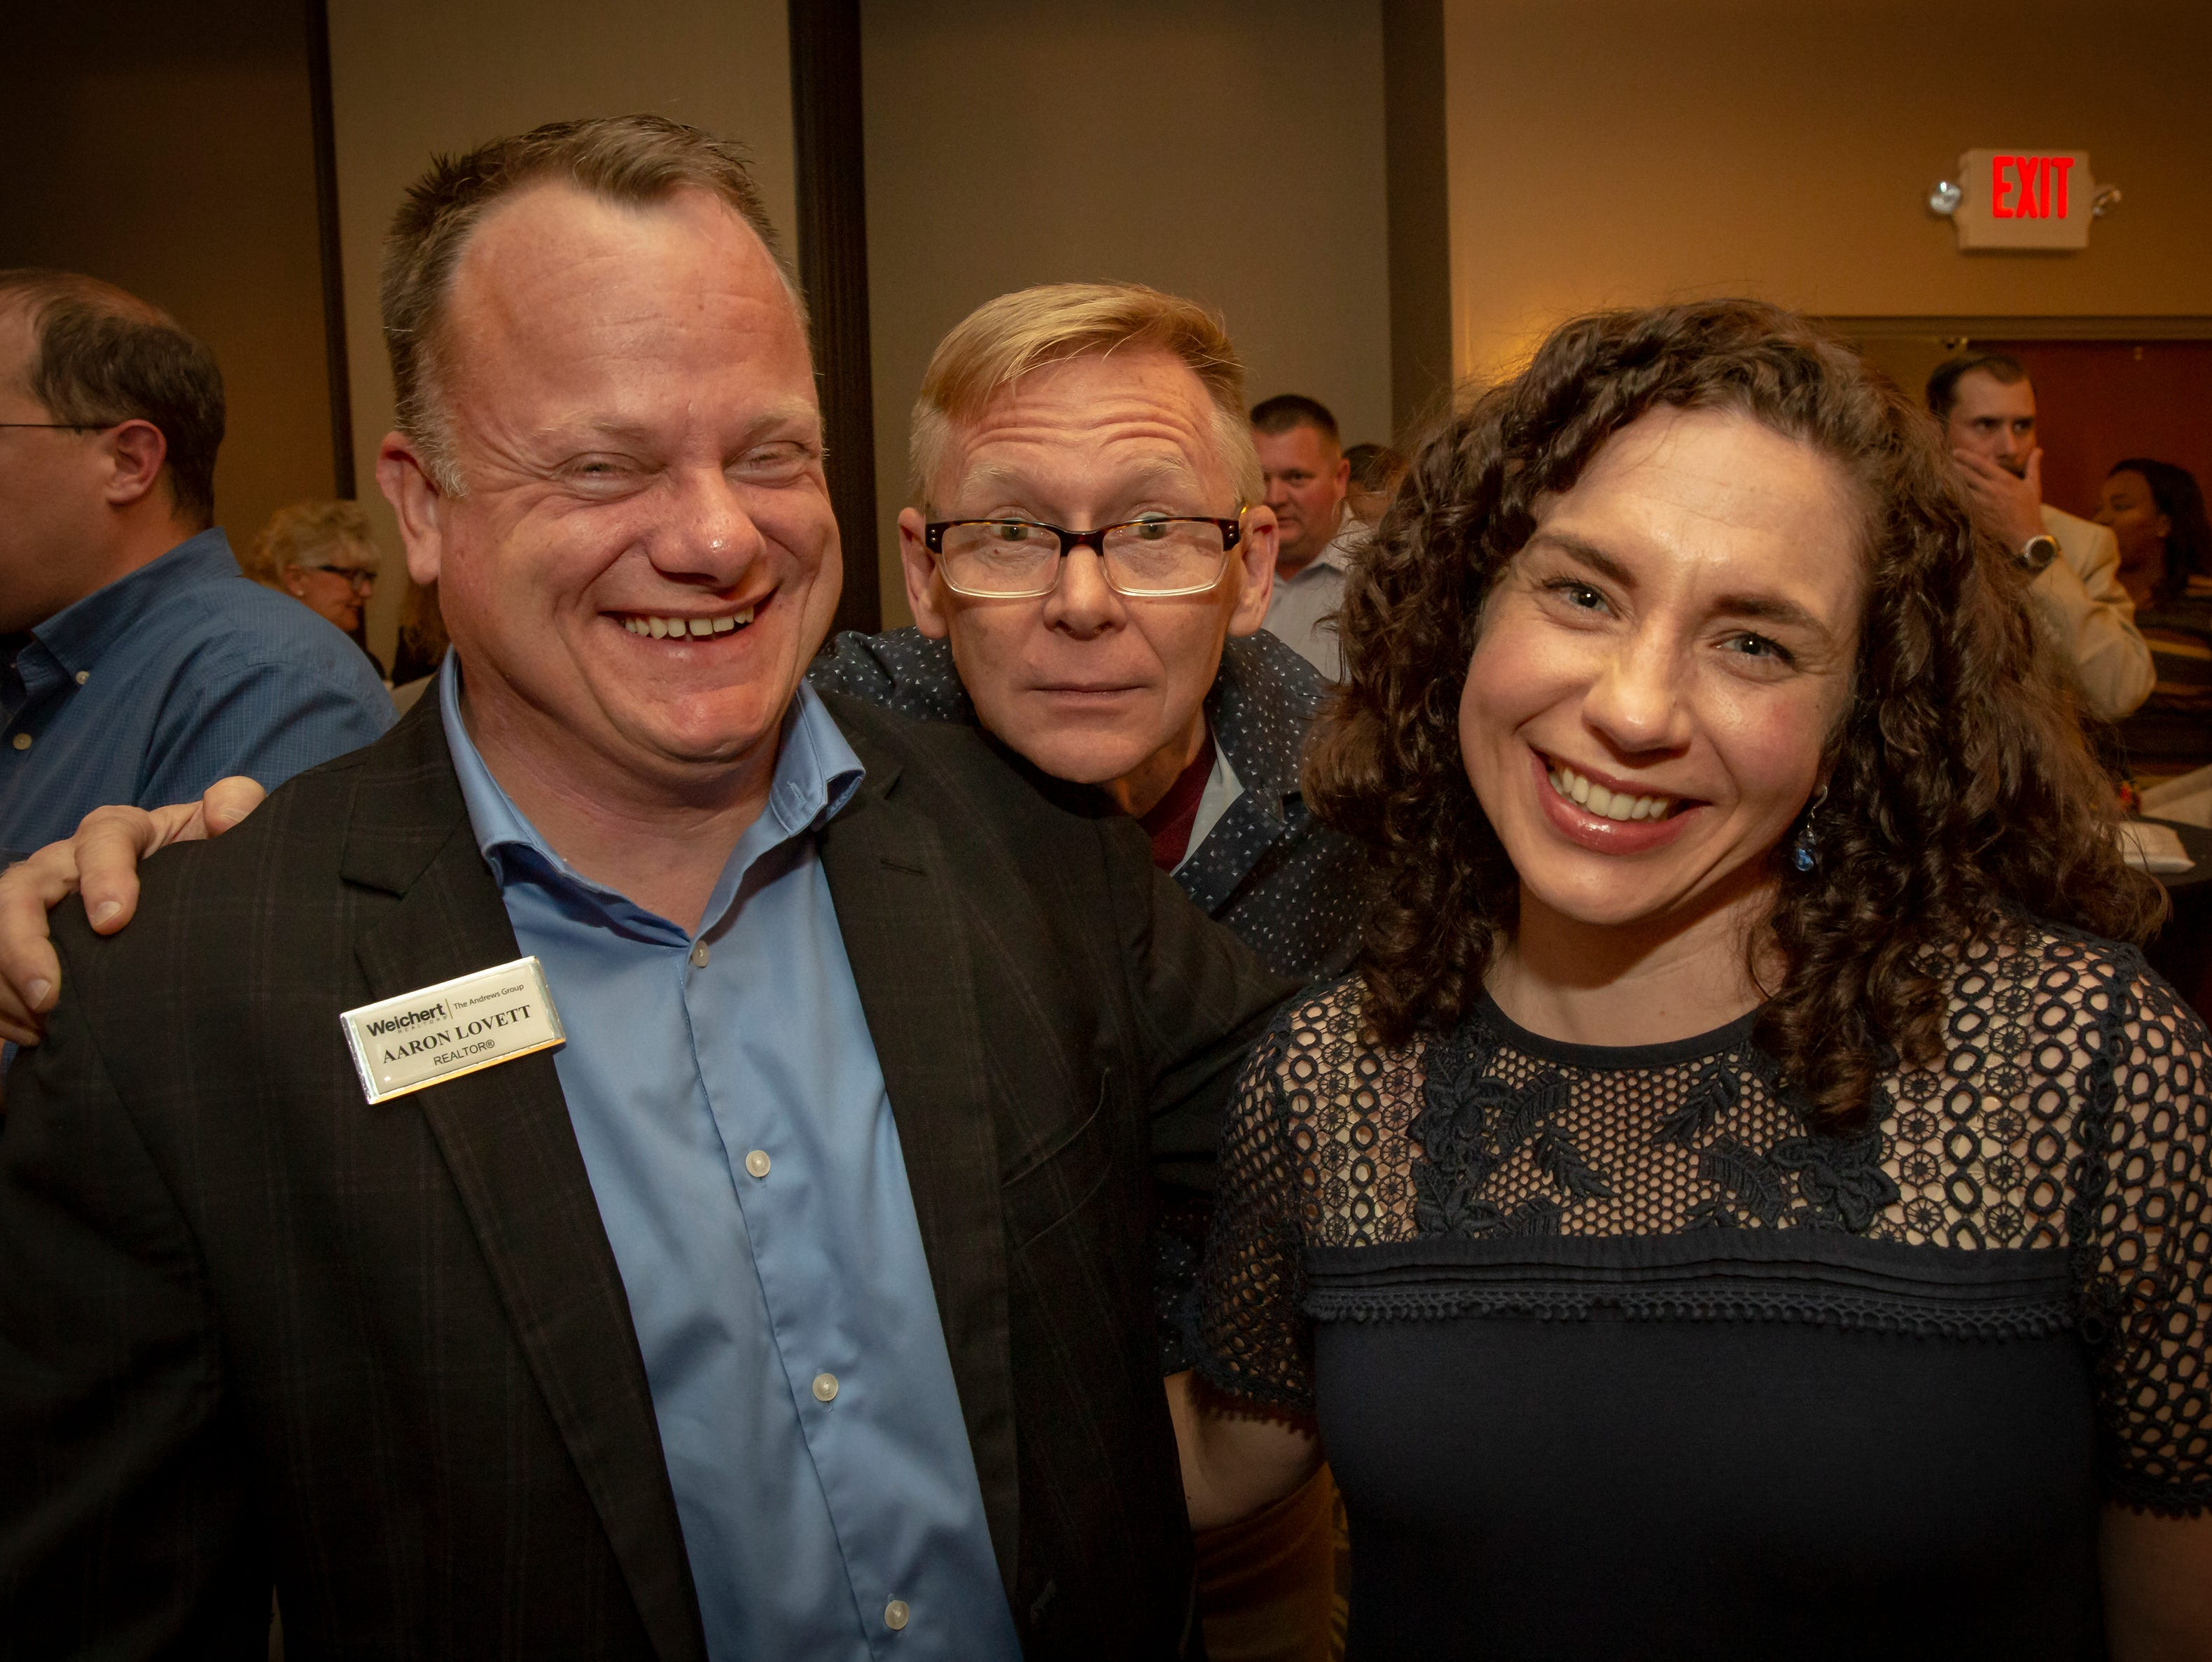 Aaron Lovett, Ron Alley and Debbie Lovett at the 24th annual Ruthie awards held at DoubleTree on Old Fort Parkway.